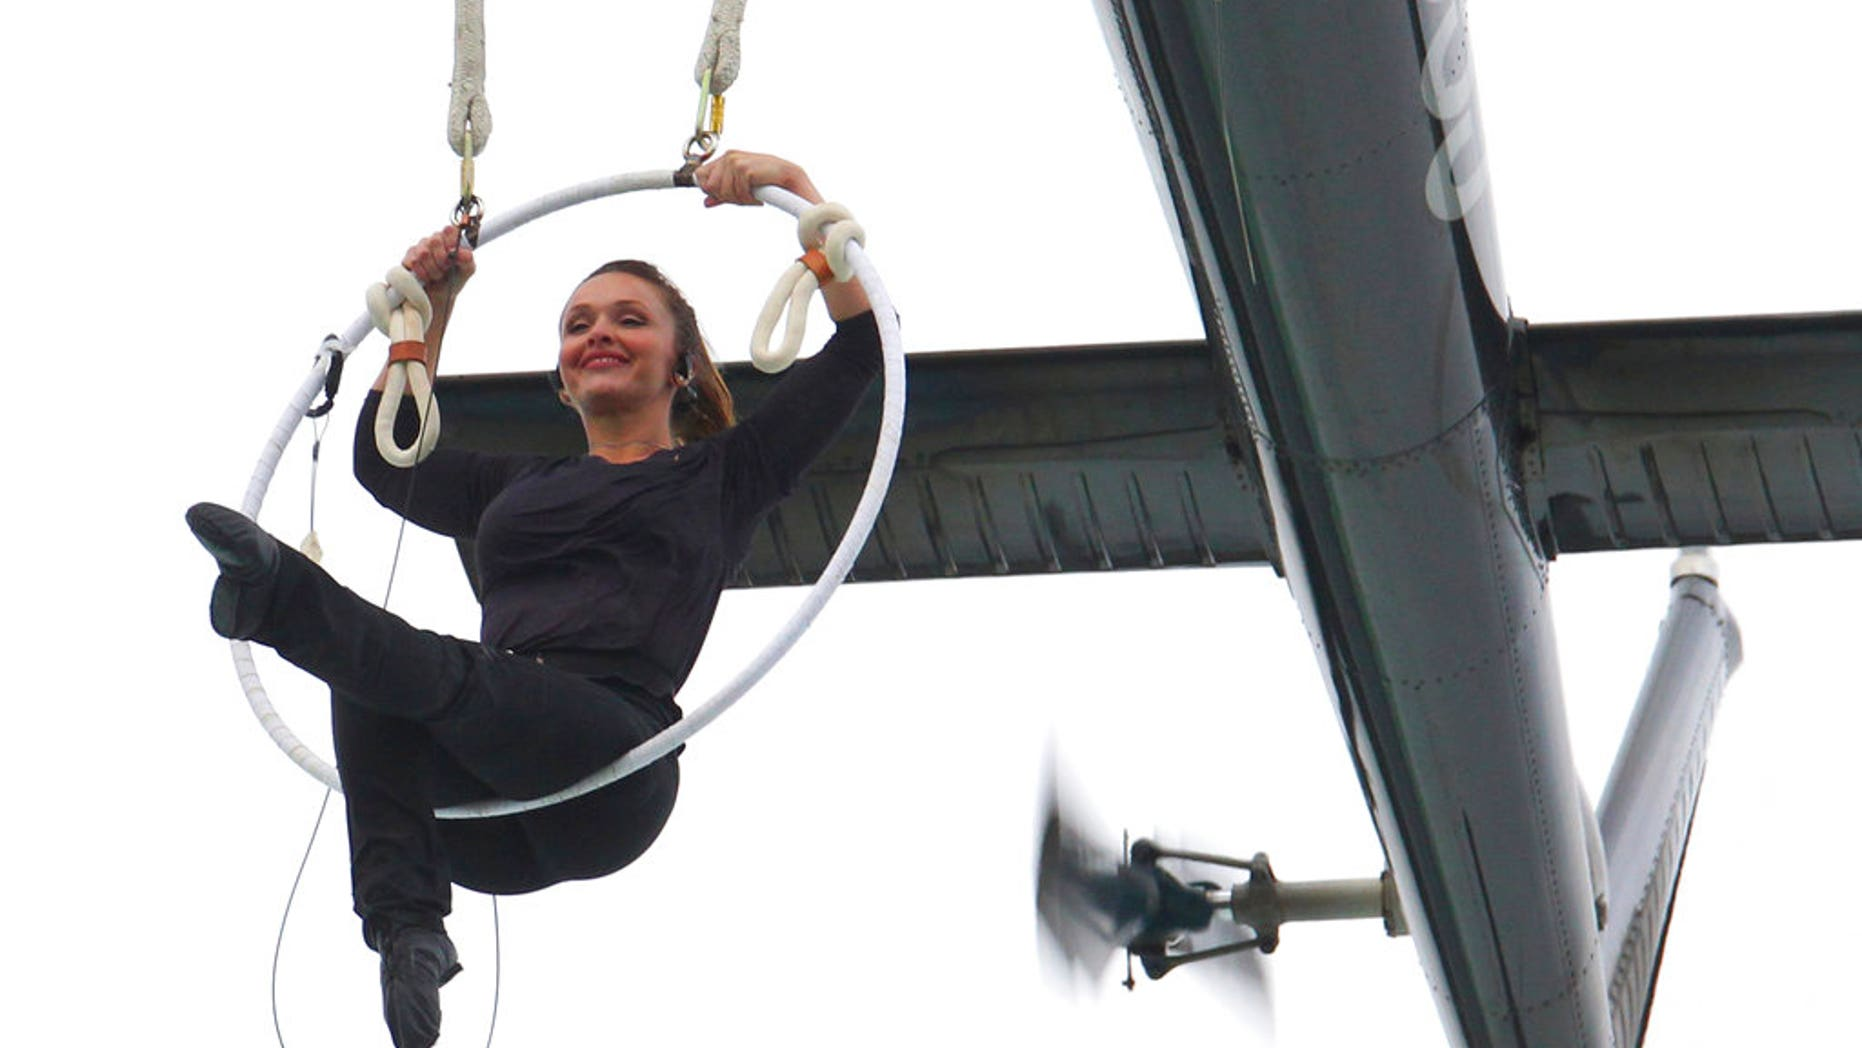 Erendira Wallenda performs a series of acrobatic maneuvers, including hanging by her teeth, while suspended from a helicopter above Niagara Falls in Niagara Falls, N.Y. Thursday June 15, 2017. (AP Photo/Bill Wippert)